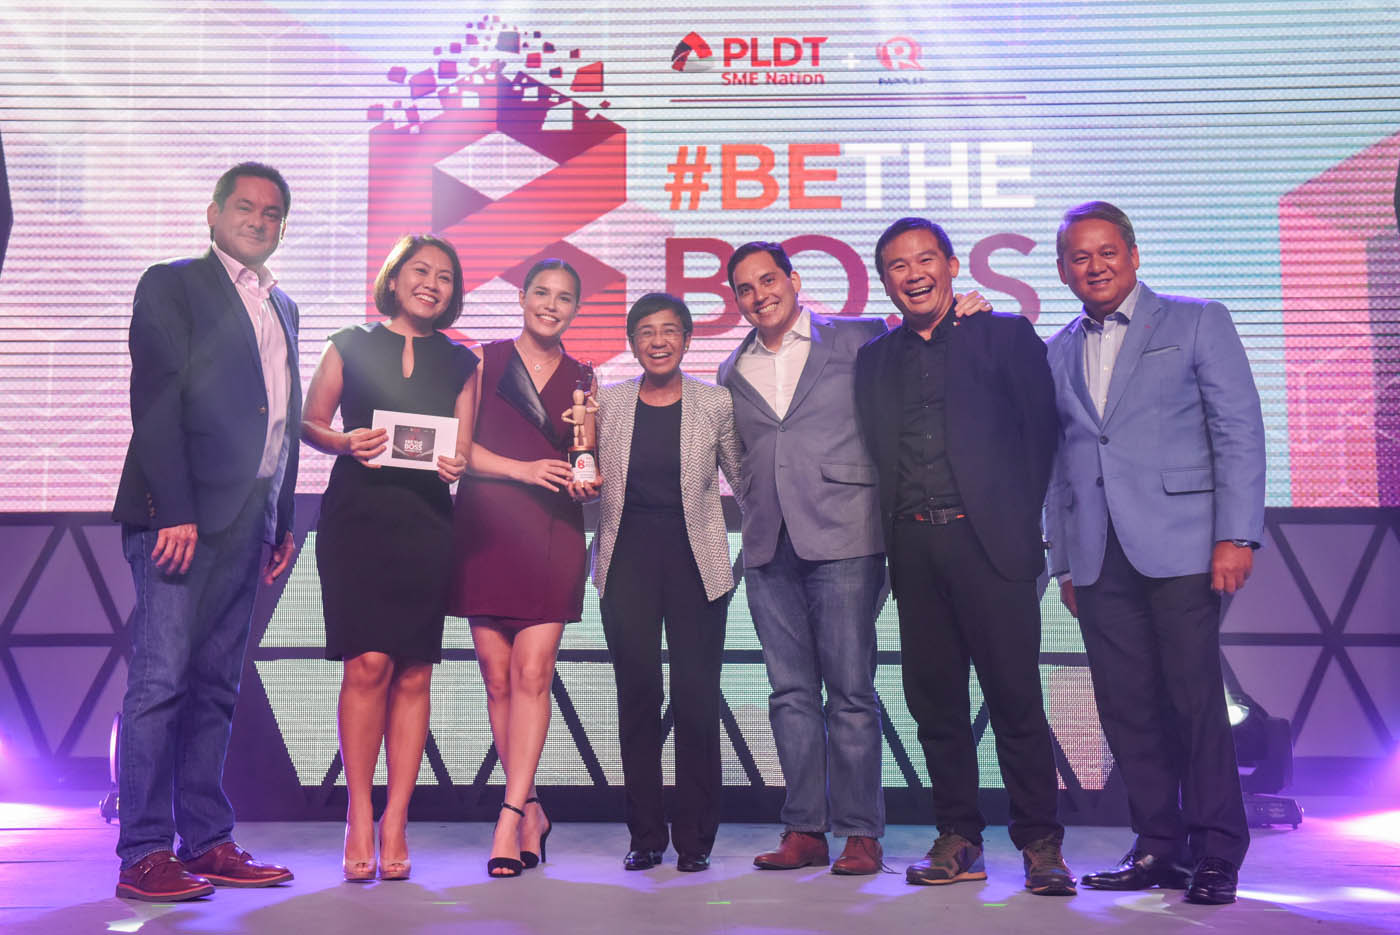 BOSS FOR SOCIAL MEDIA. (L to R) Mitch Locsin, Jill Borja, Nadine Fanlo, Maria Ressa, Jaime Fanlo, Media5 President Chot Reyes, and Eric Alberto